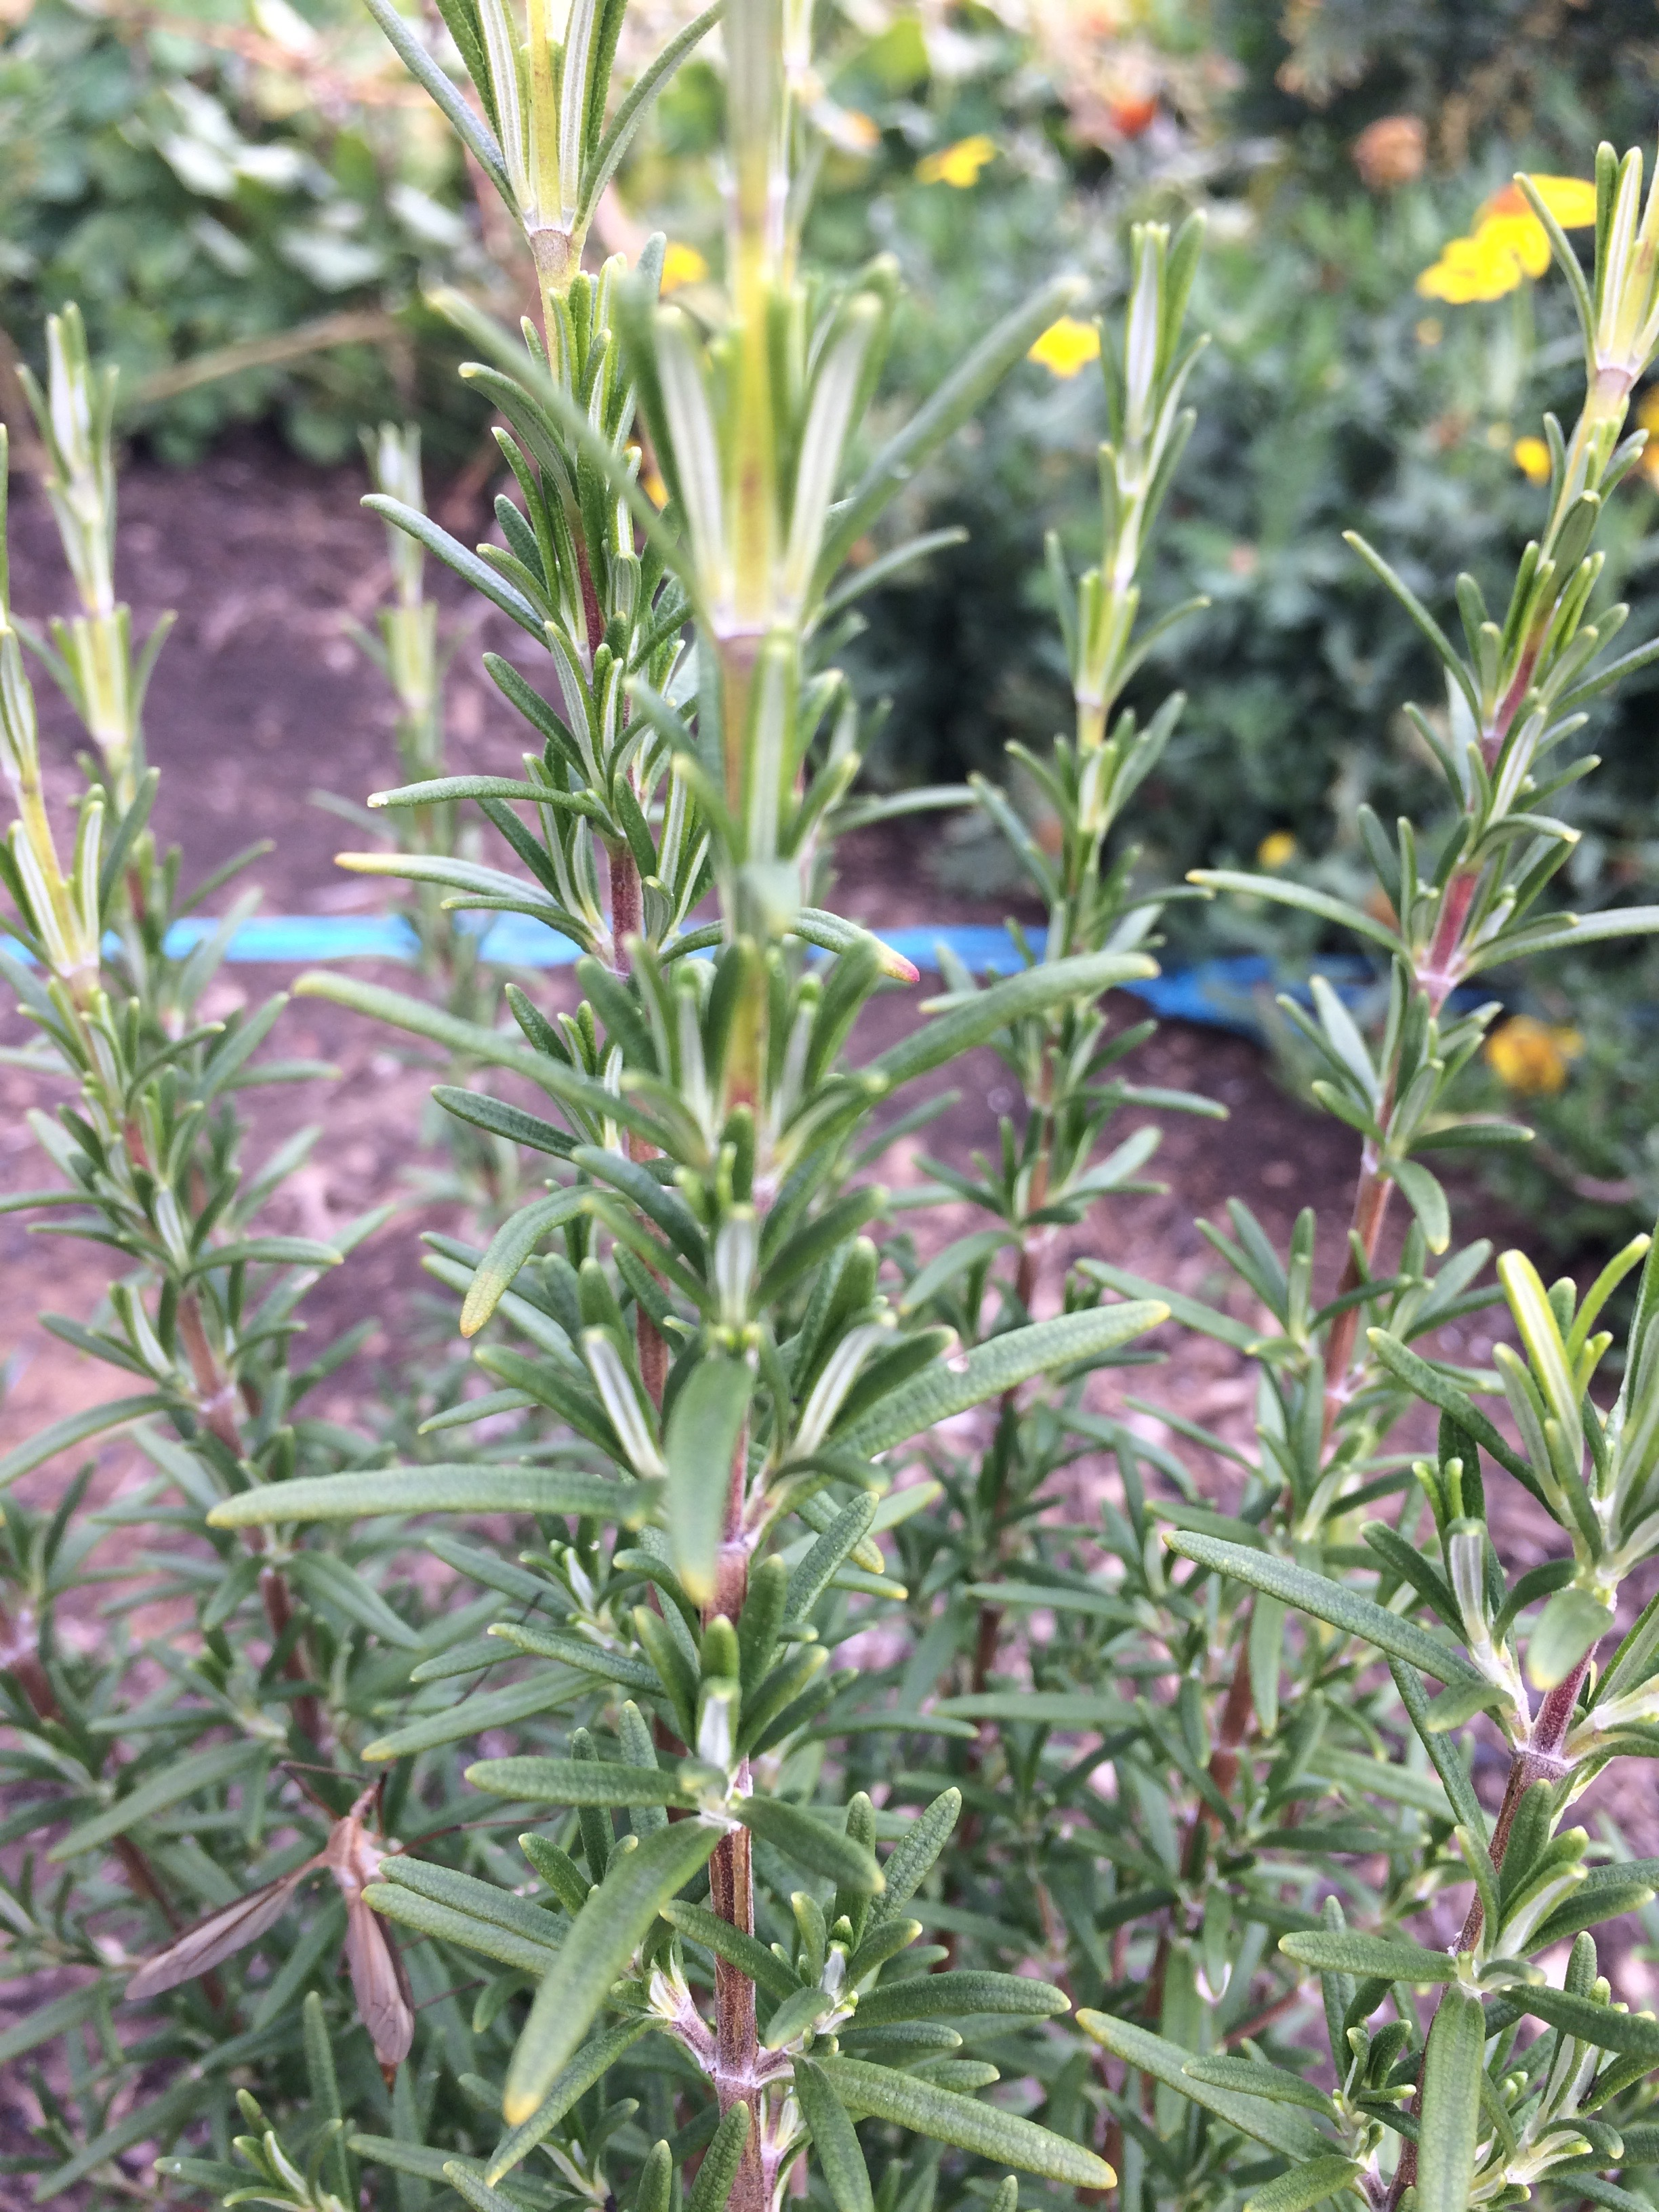 REF:94  'Rosamarinus officinalis'  Romarin, rosemary  excellent to flavour salt. use leaves and stalks in roasts.